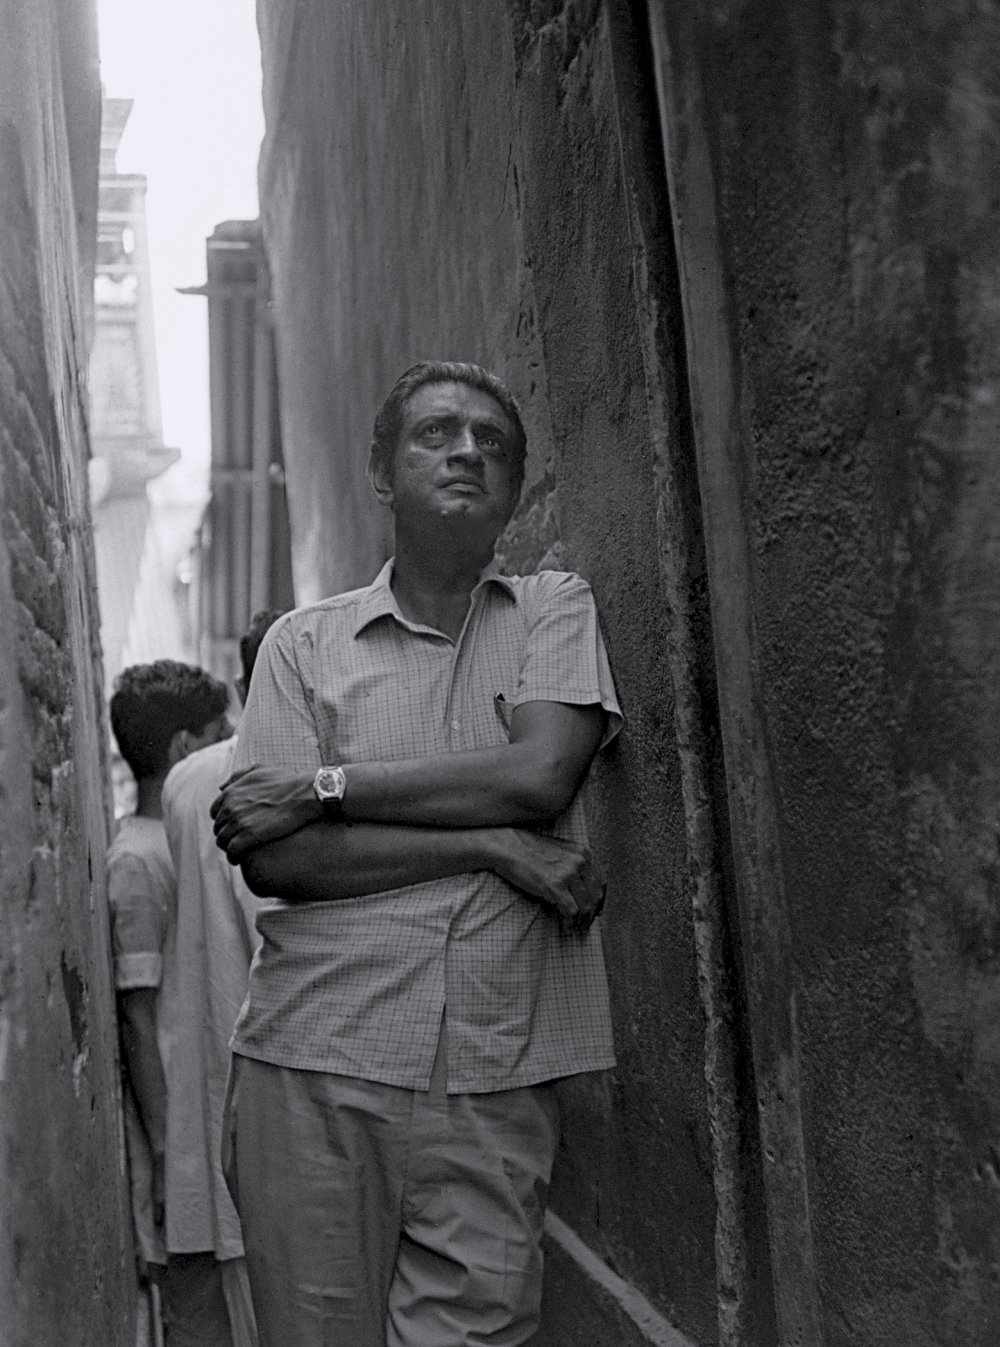 Satyajit Ray on the set of The Adversary, 1970. © Nemai Ghosh